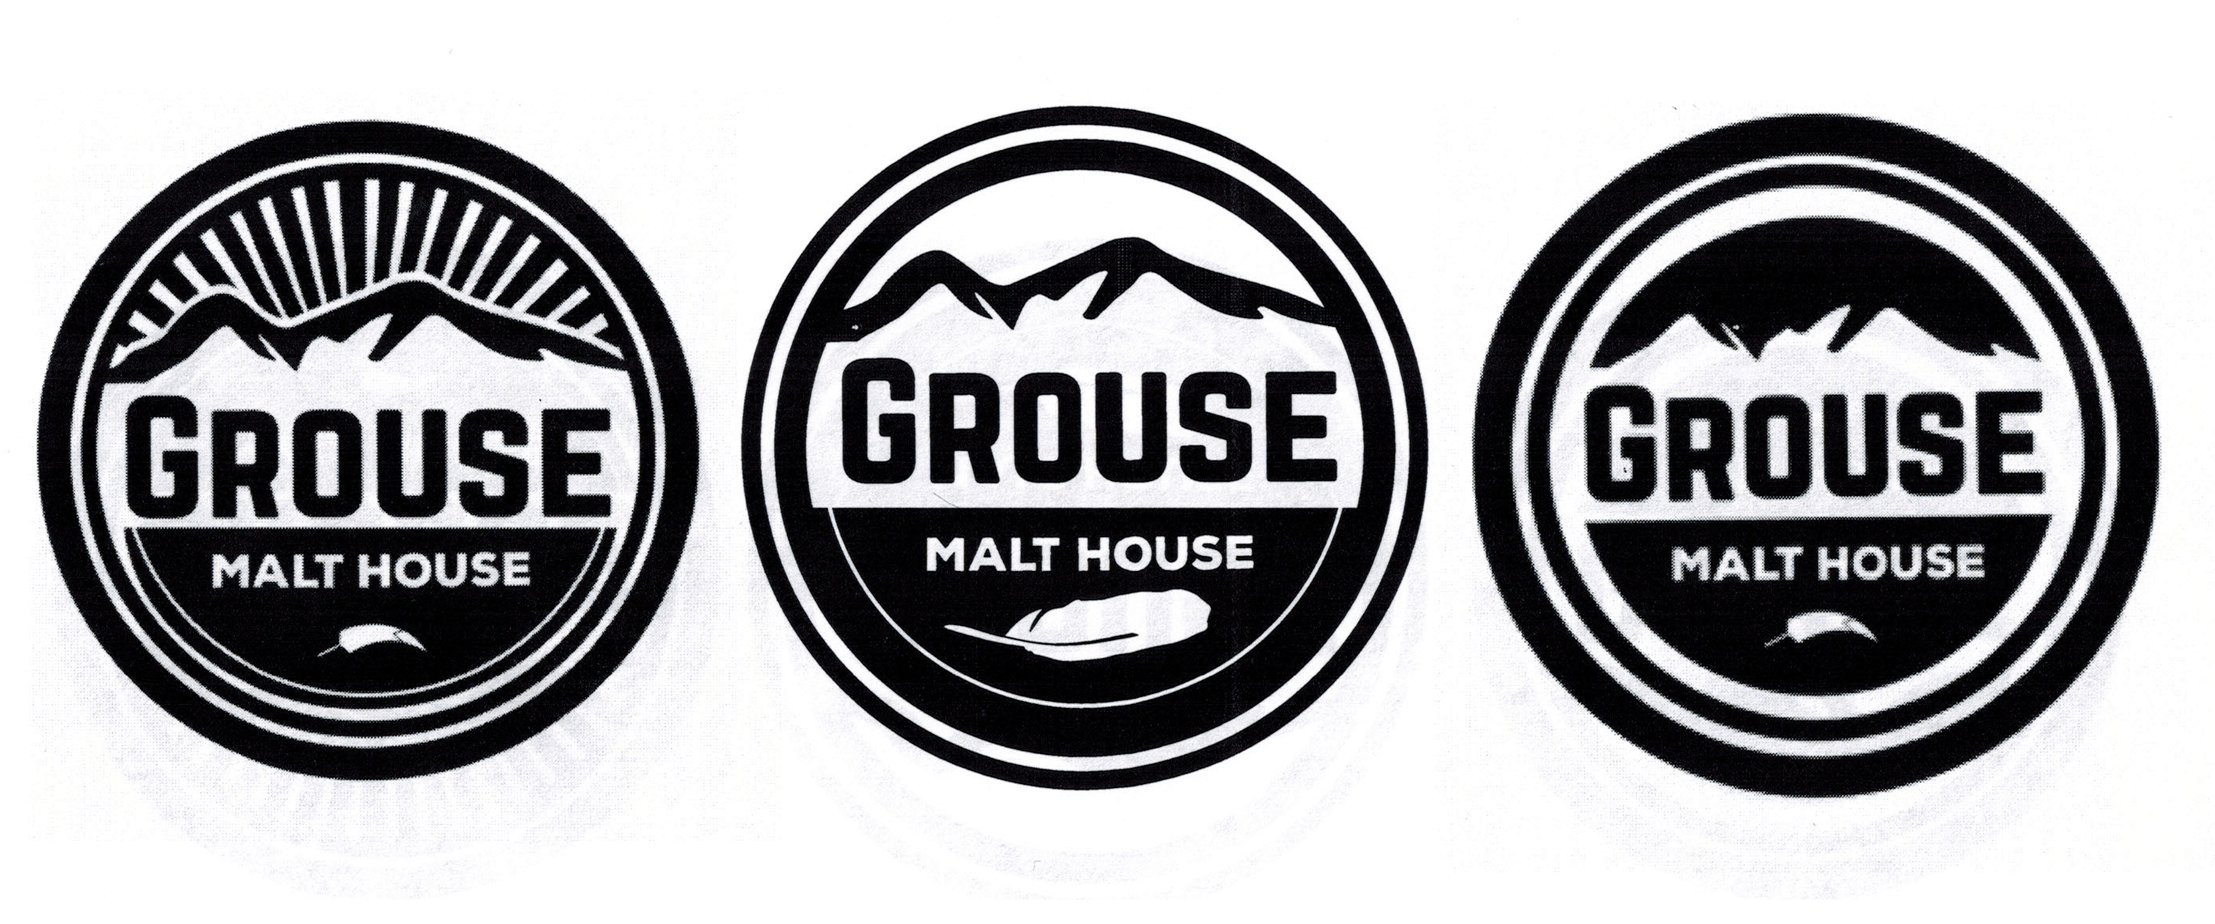 Sneak Peak at the Grouse Logo!